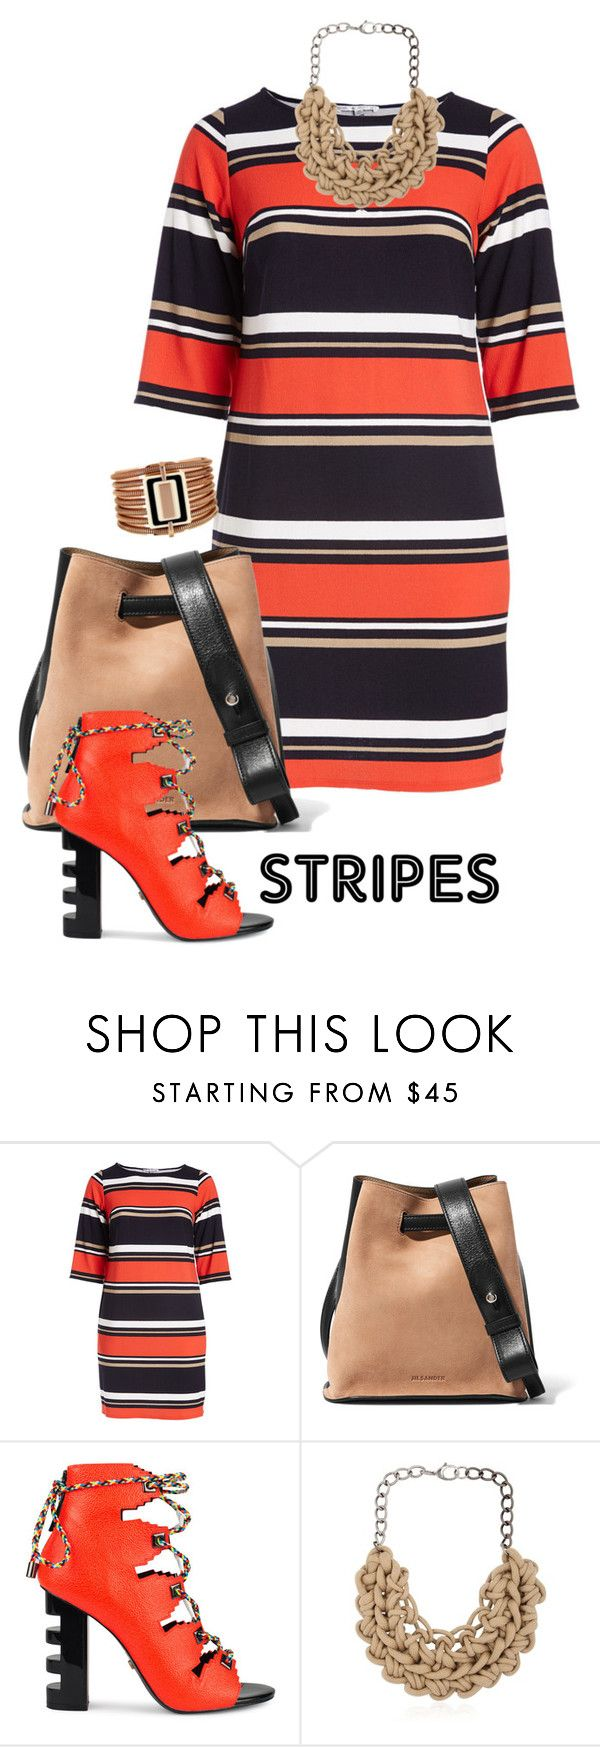 """""""Lined"""" by naomi-mann ❤ liked on Polyvore featuring Sandra Darren, Jil Sander, Kat Maconie, Alienina, Vince Camuto, BoldStripes and plus size dresses"""